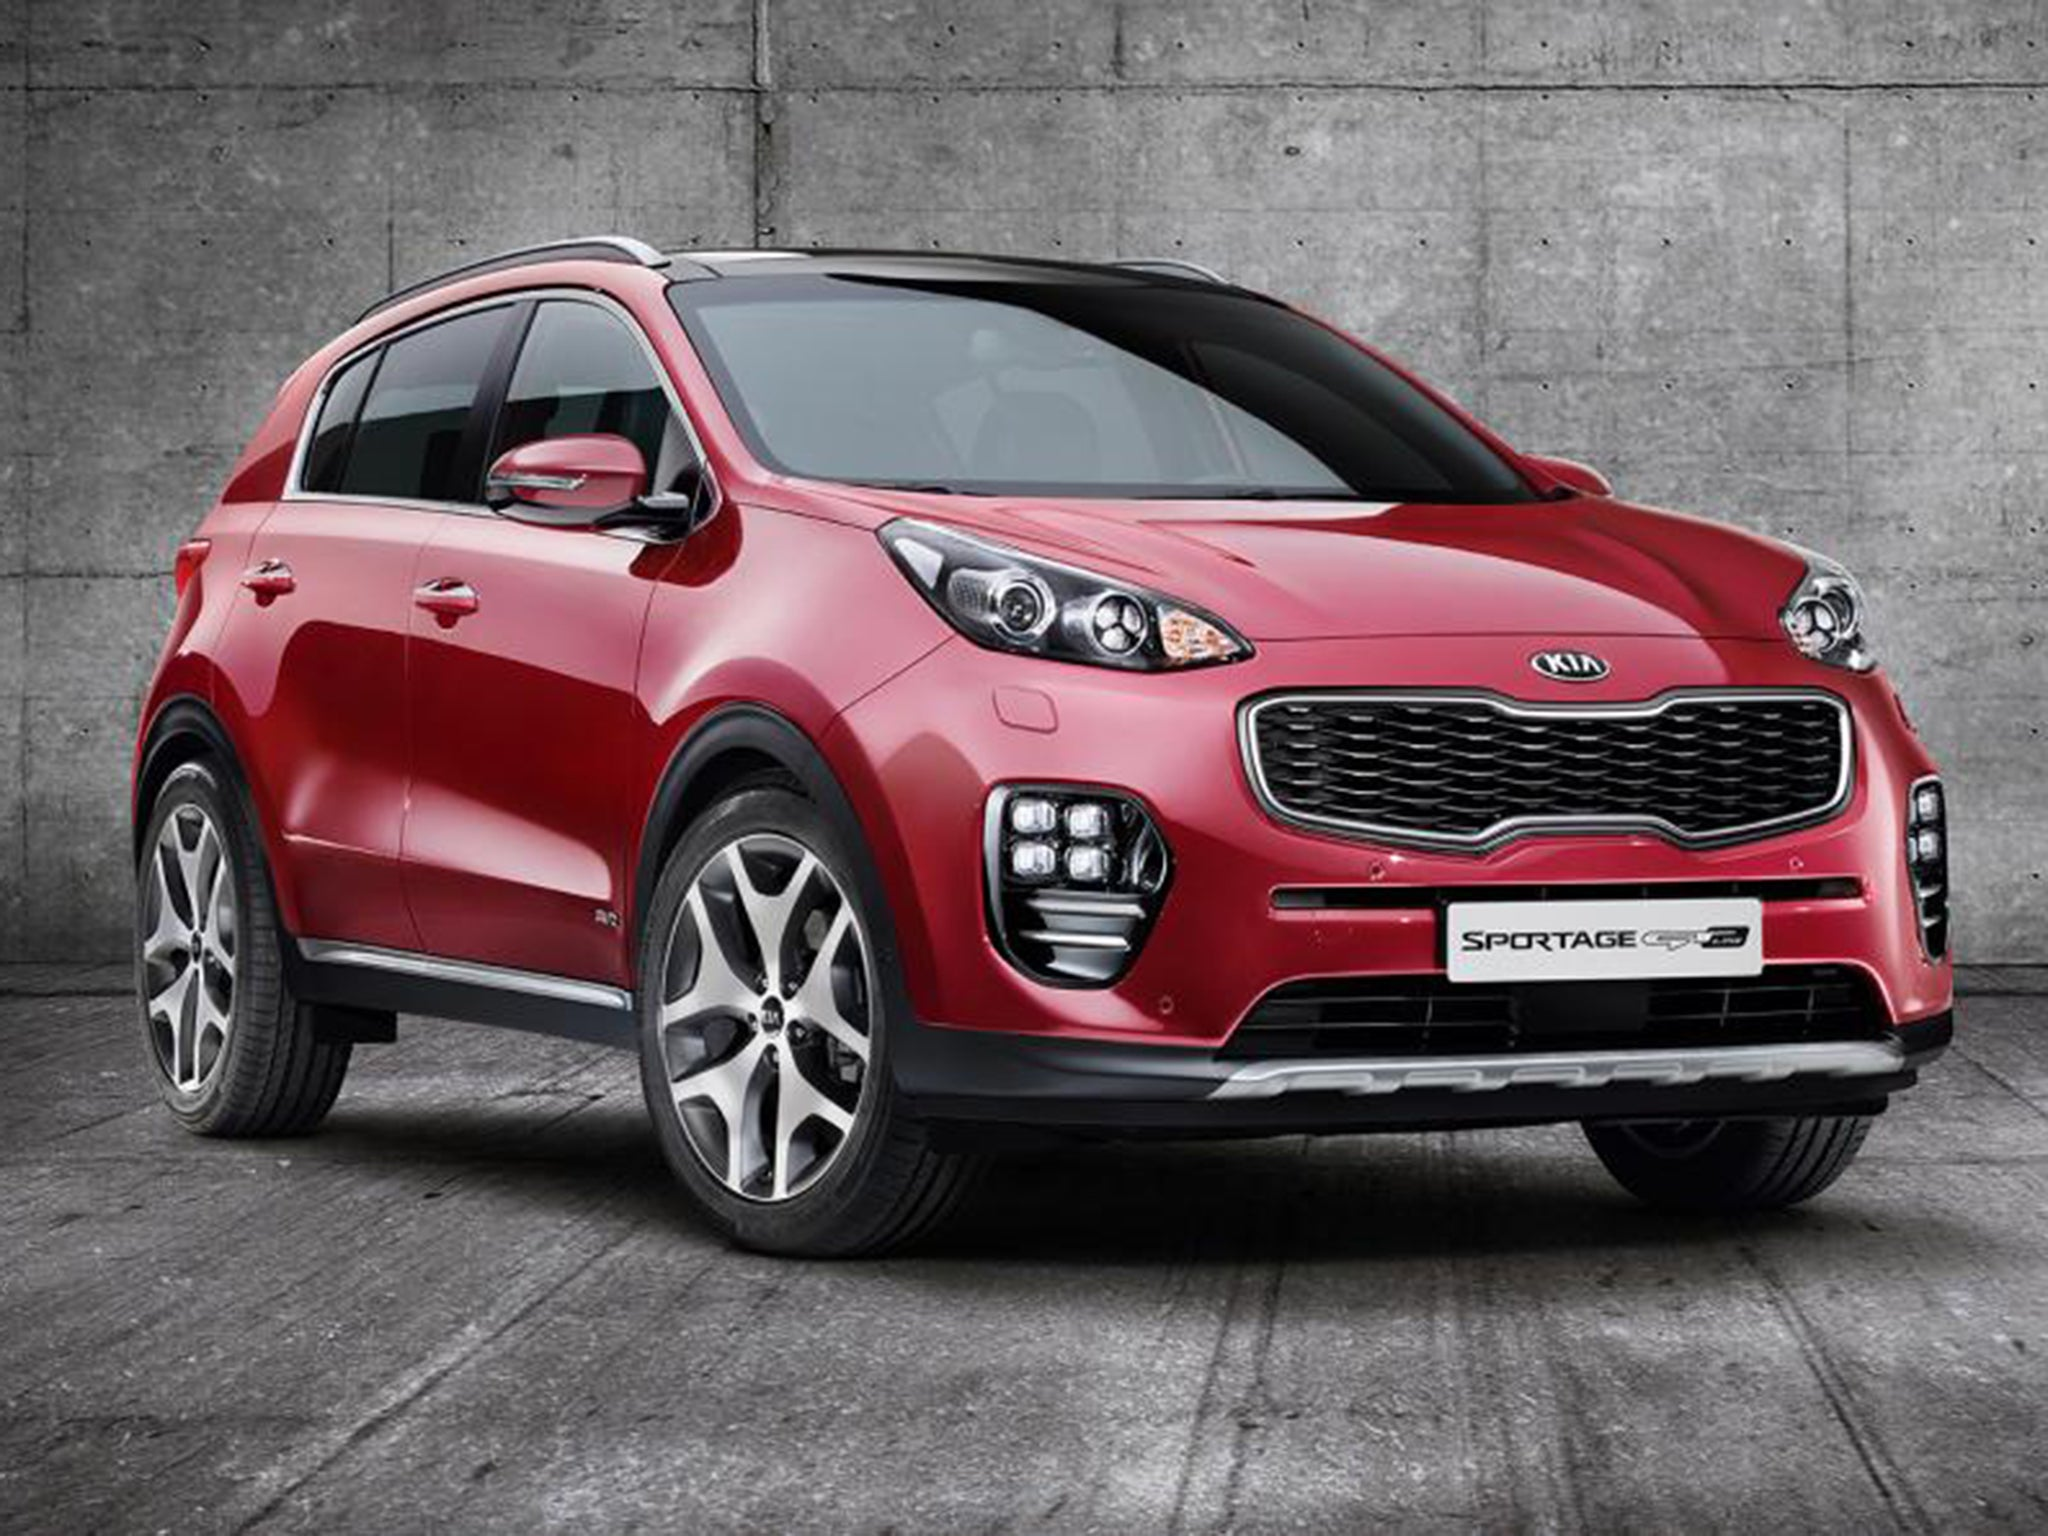 Kia sportage fourth generation suv will move upmarket when it goes on sale in february 2016 the independent